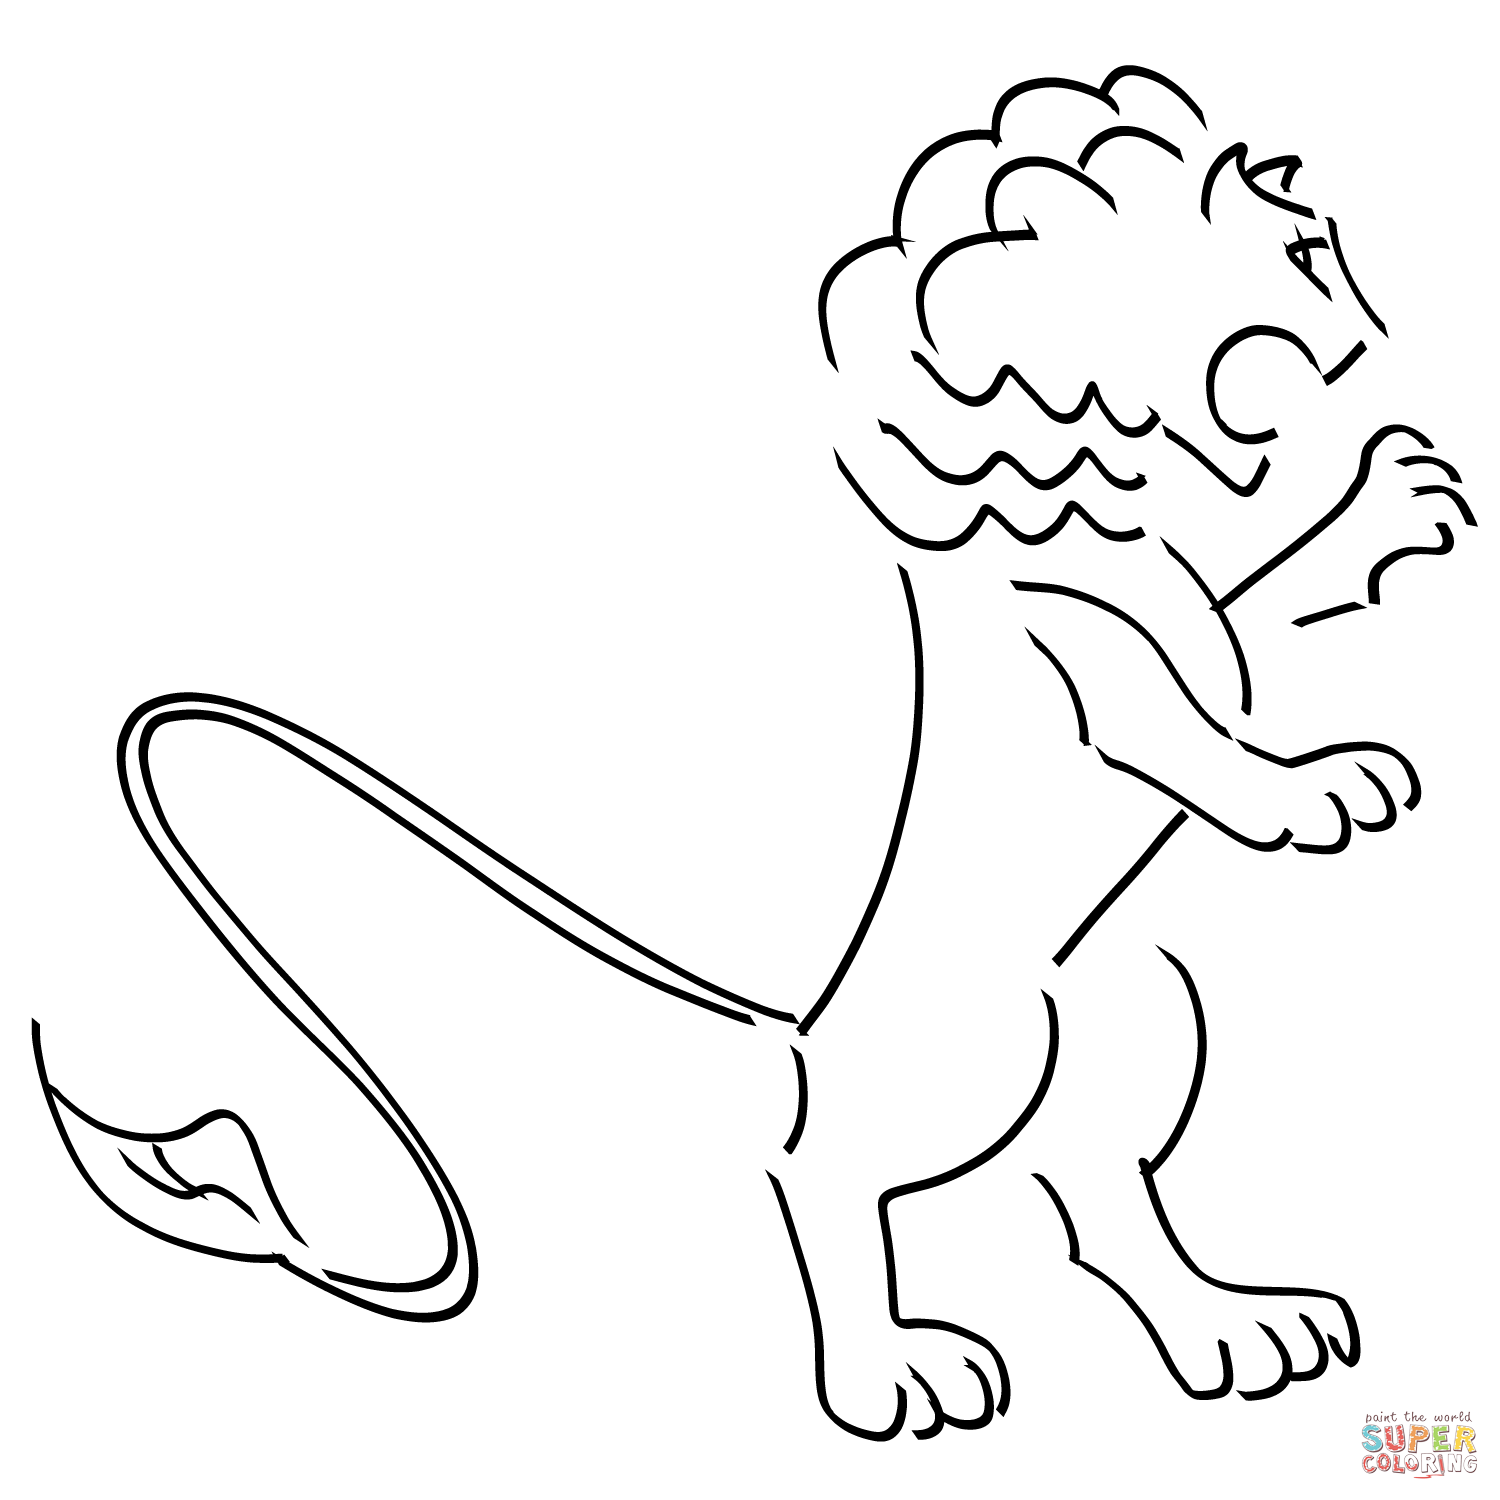 free coloring pages of lions - photo#45